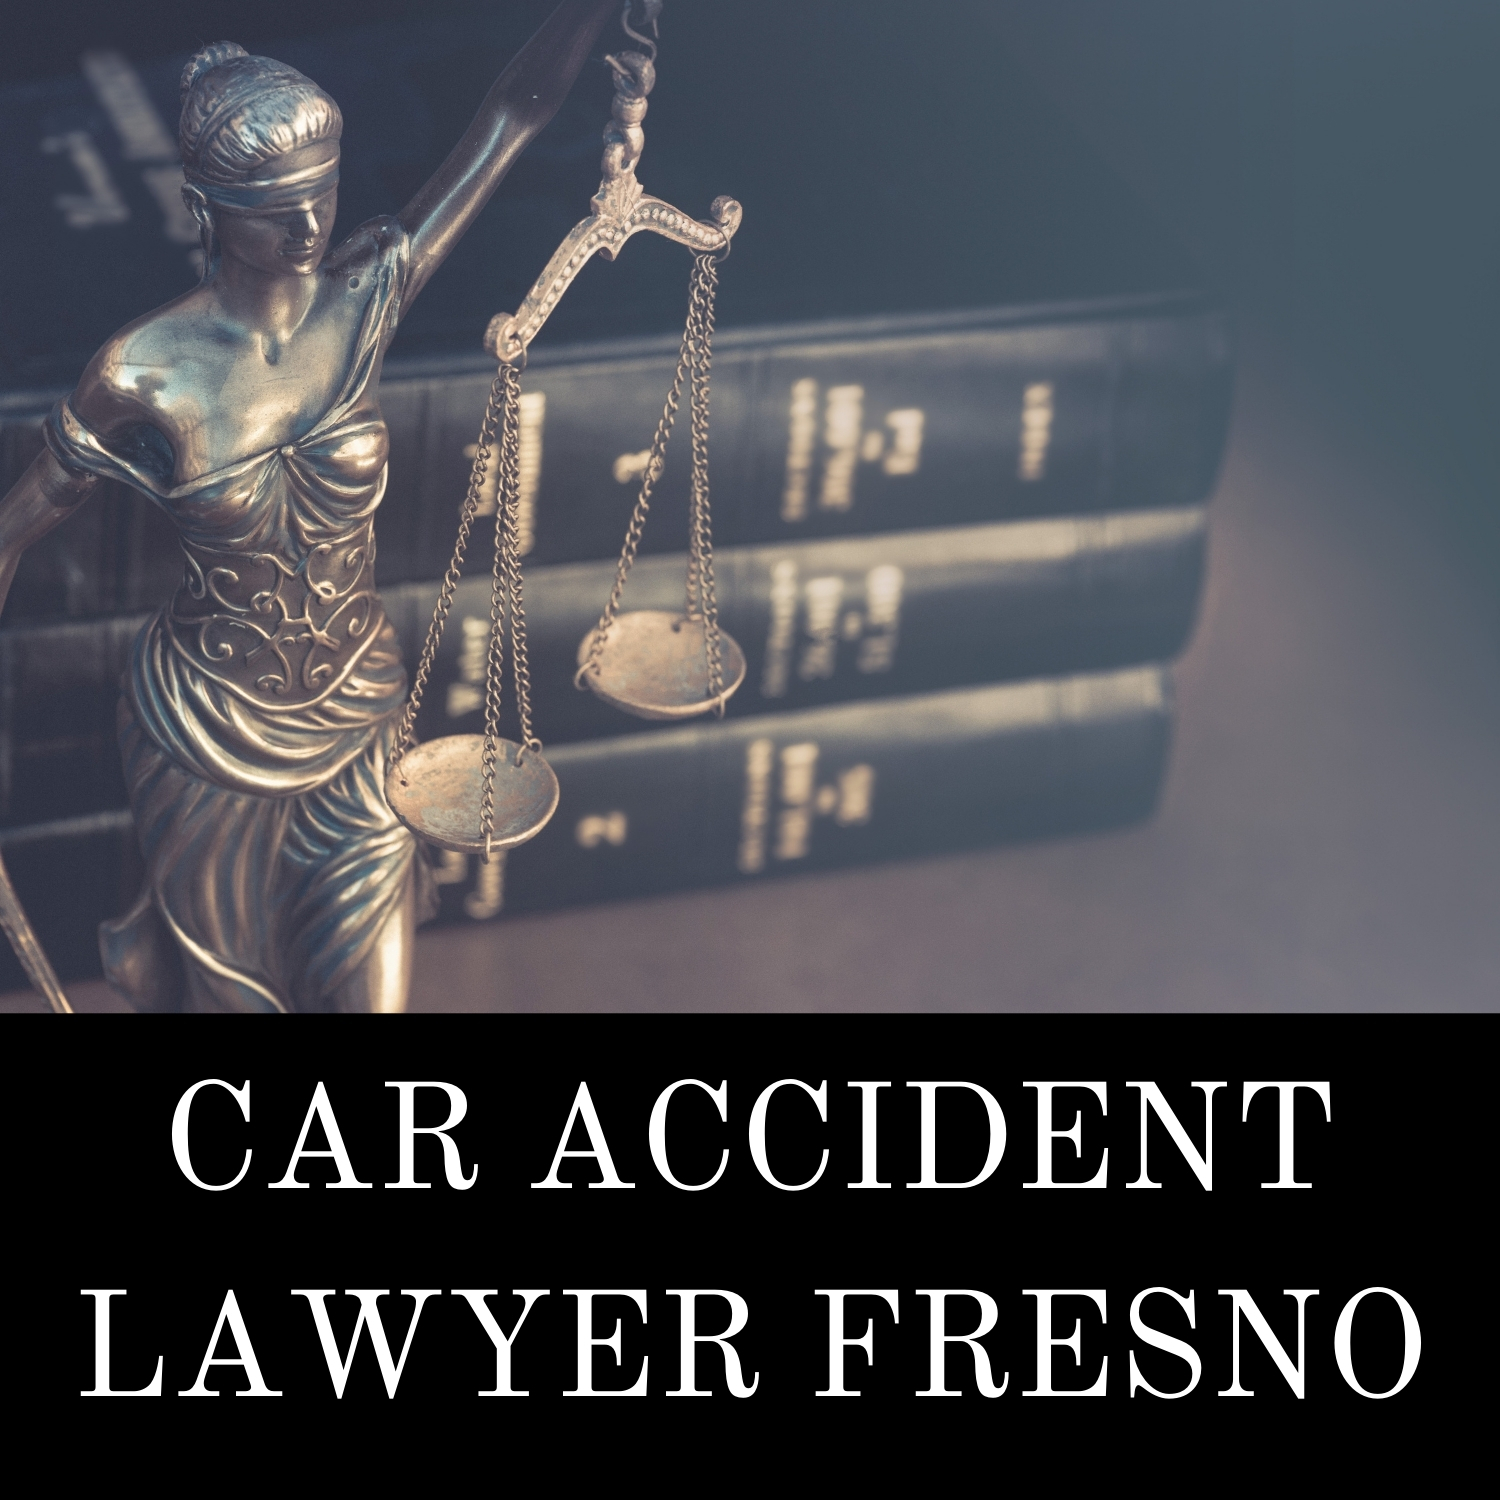 Some Ideas on Car Injury Law Firm Fresno You Should Know